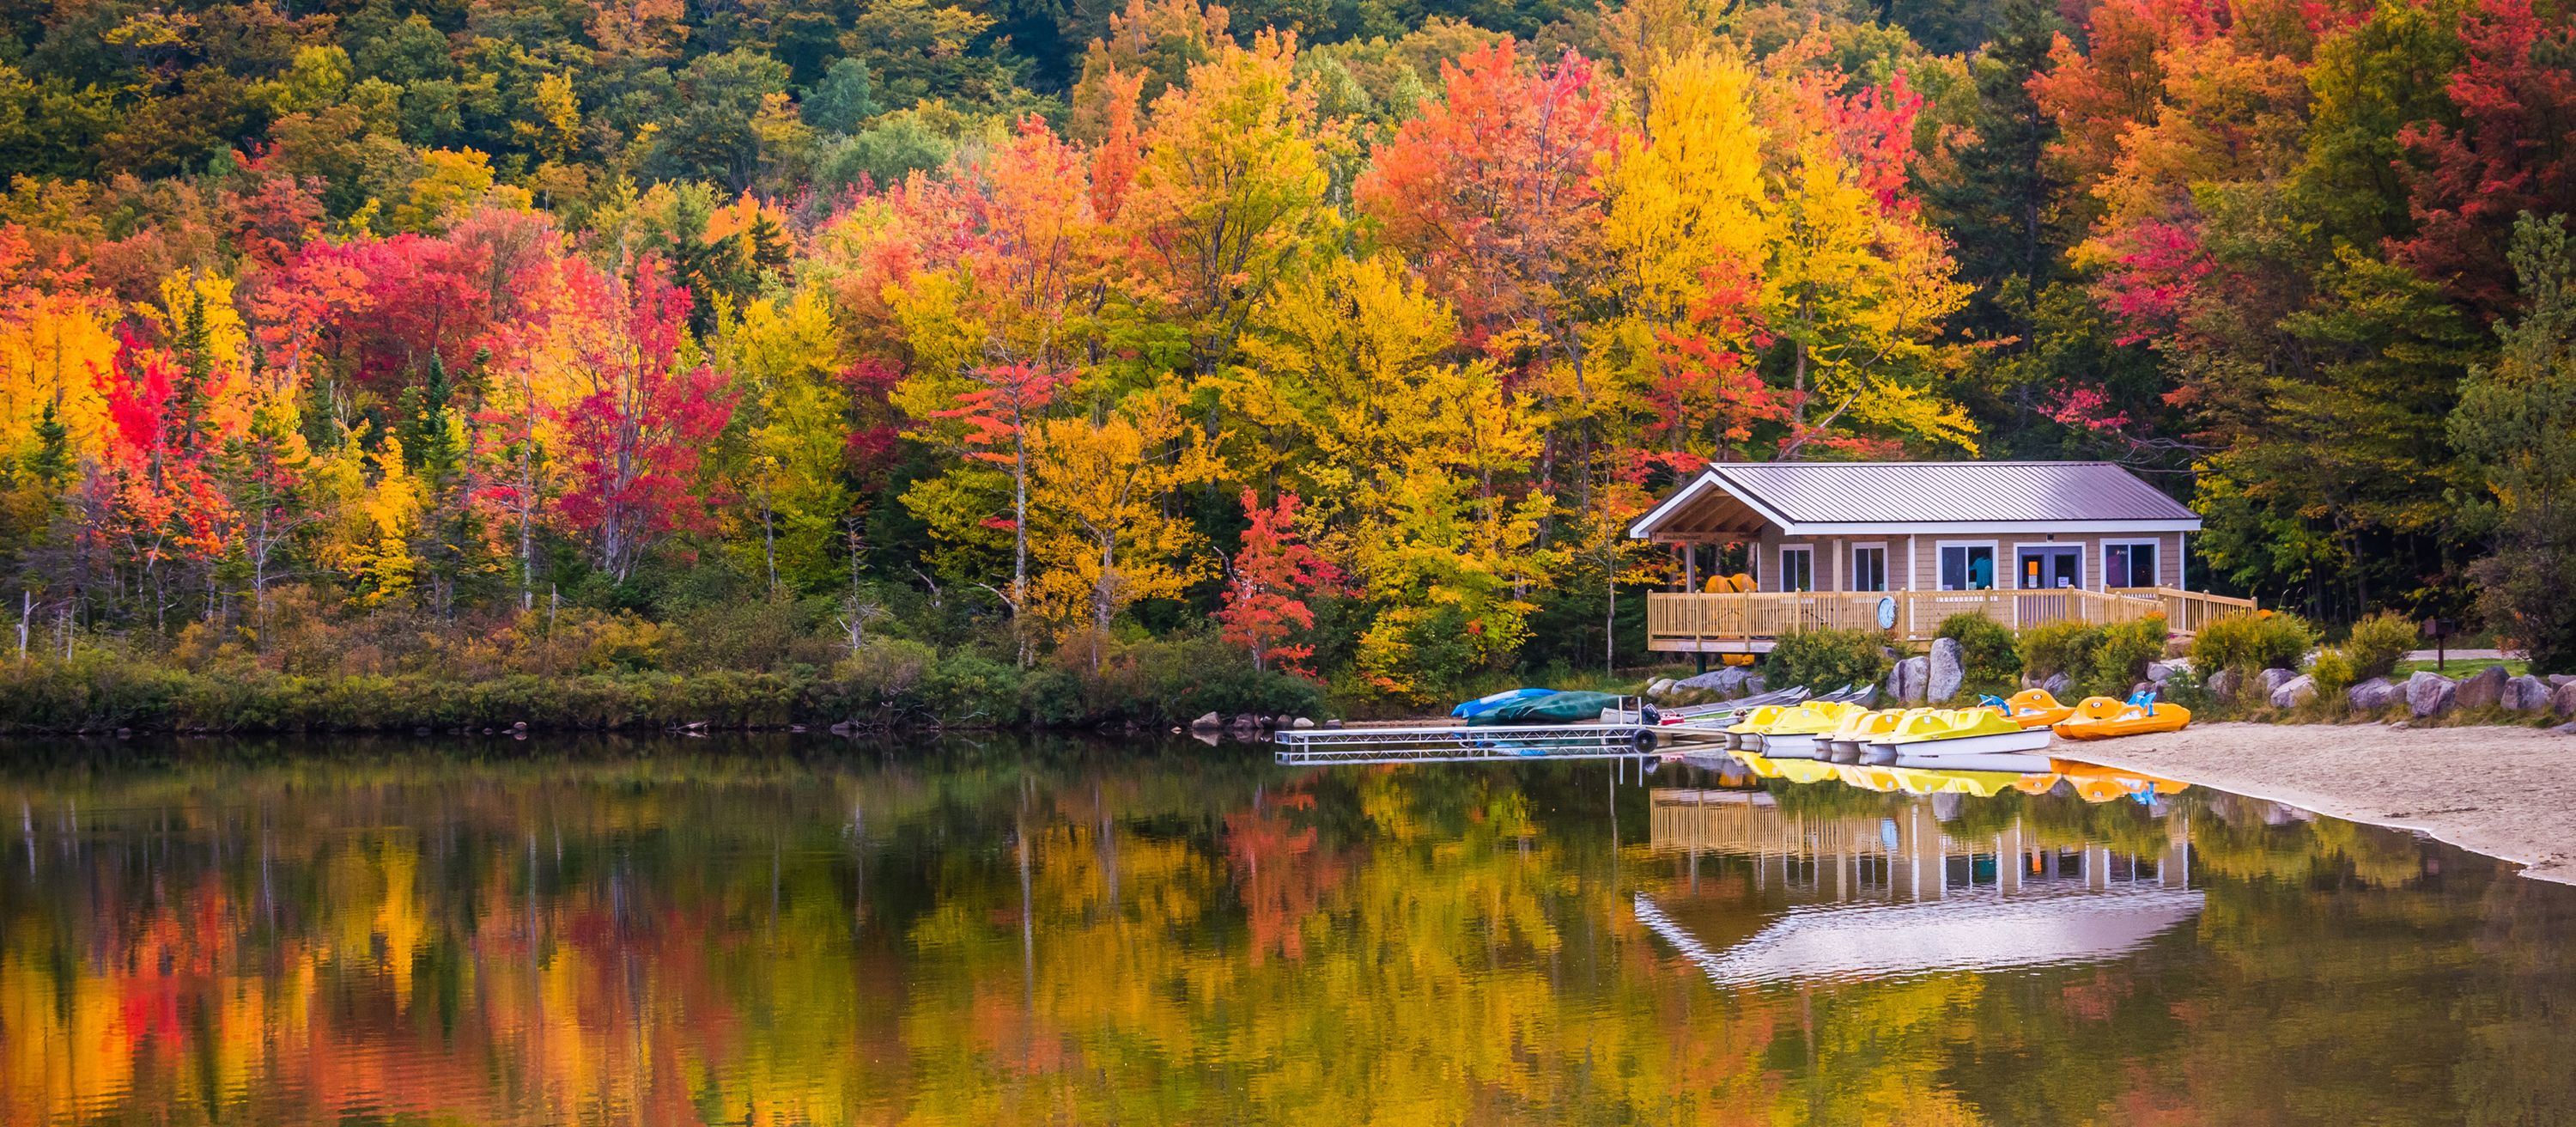 Echo Lake, Franconia Notch State Park, New Hampshire